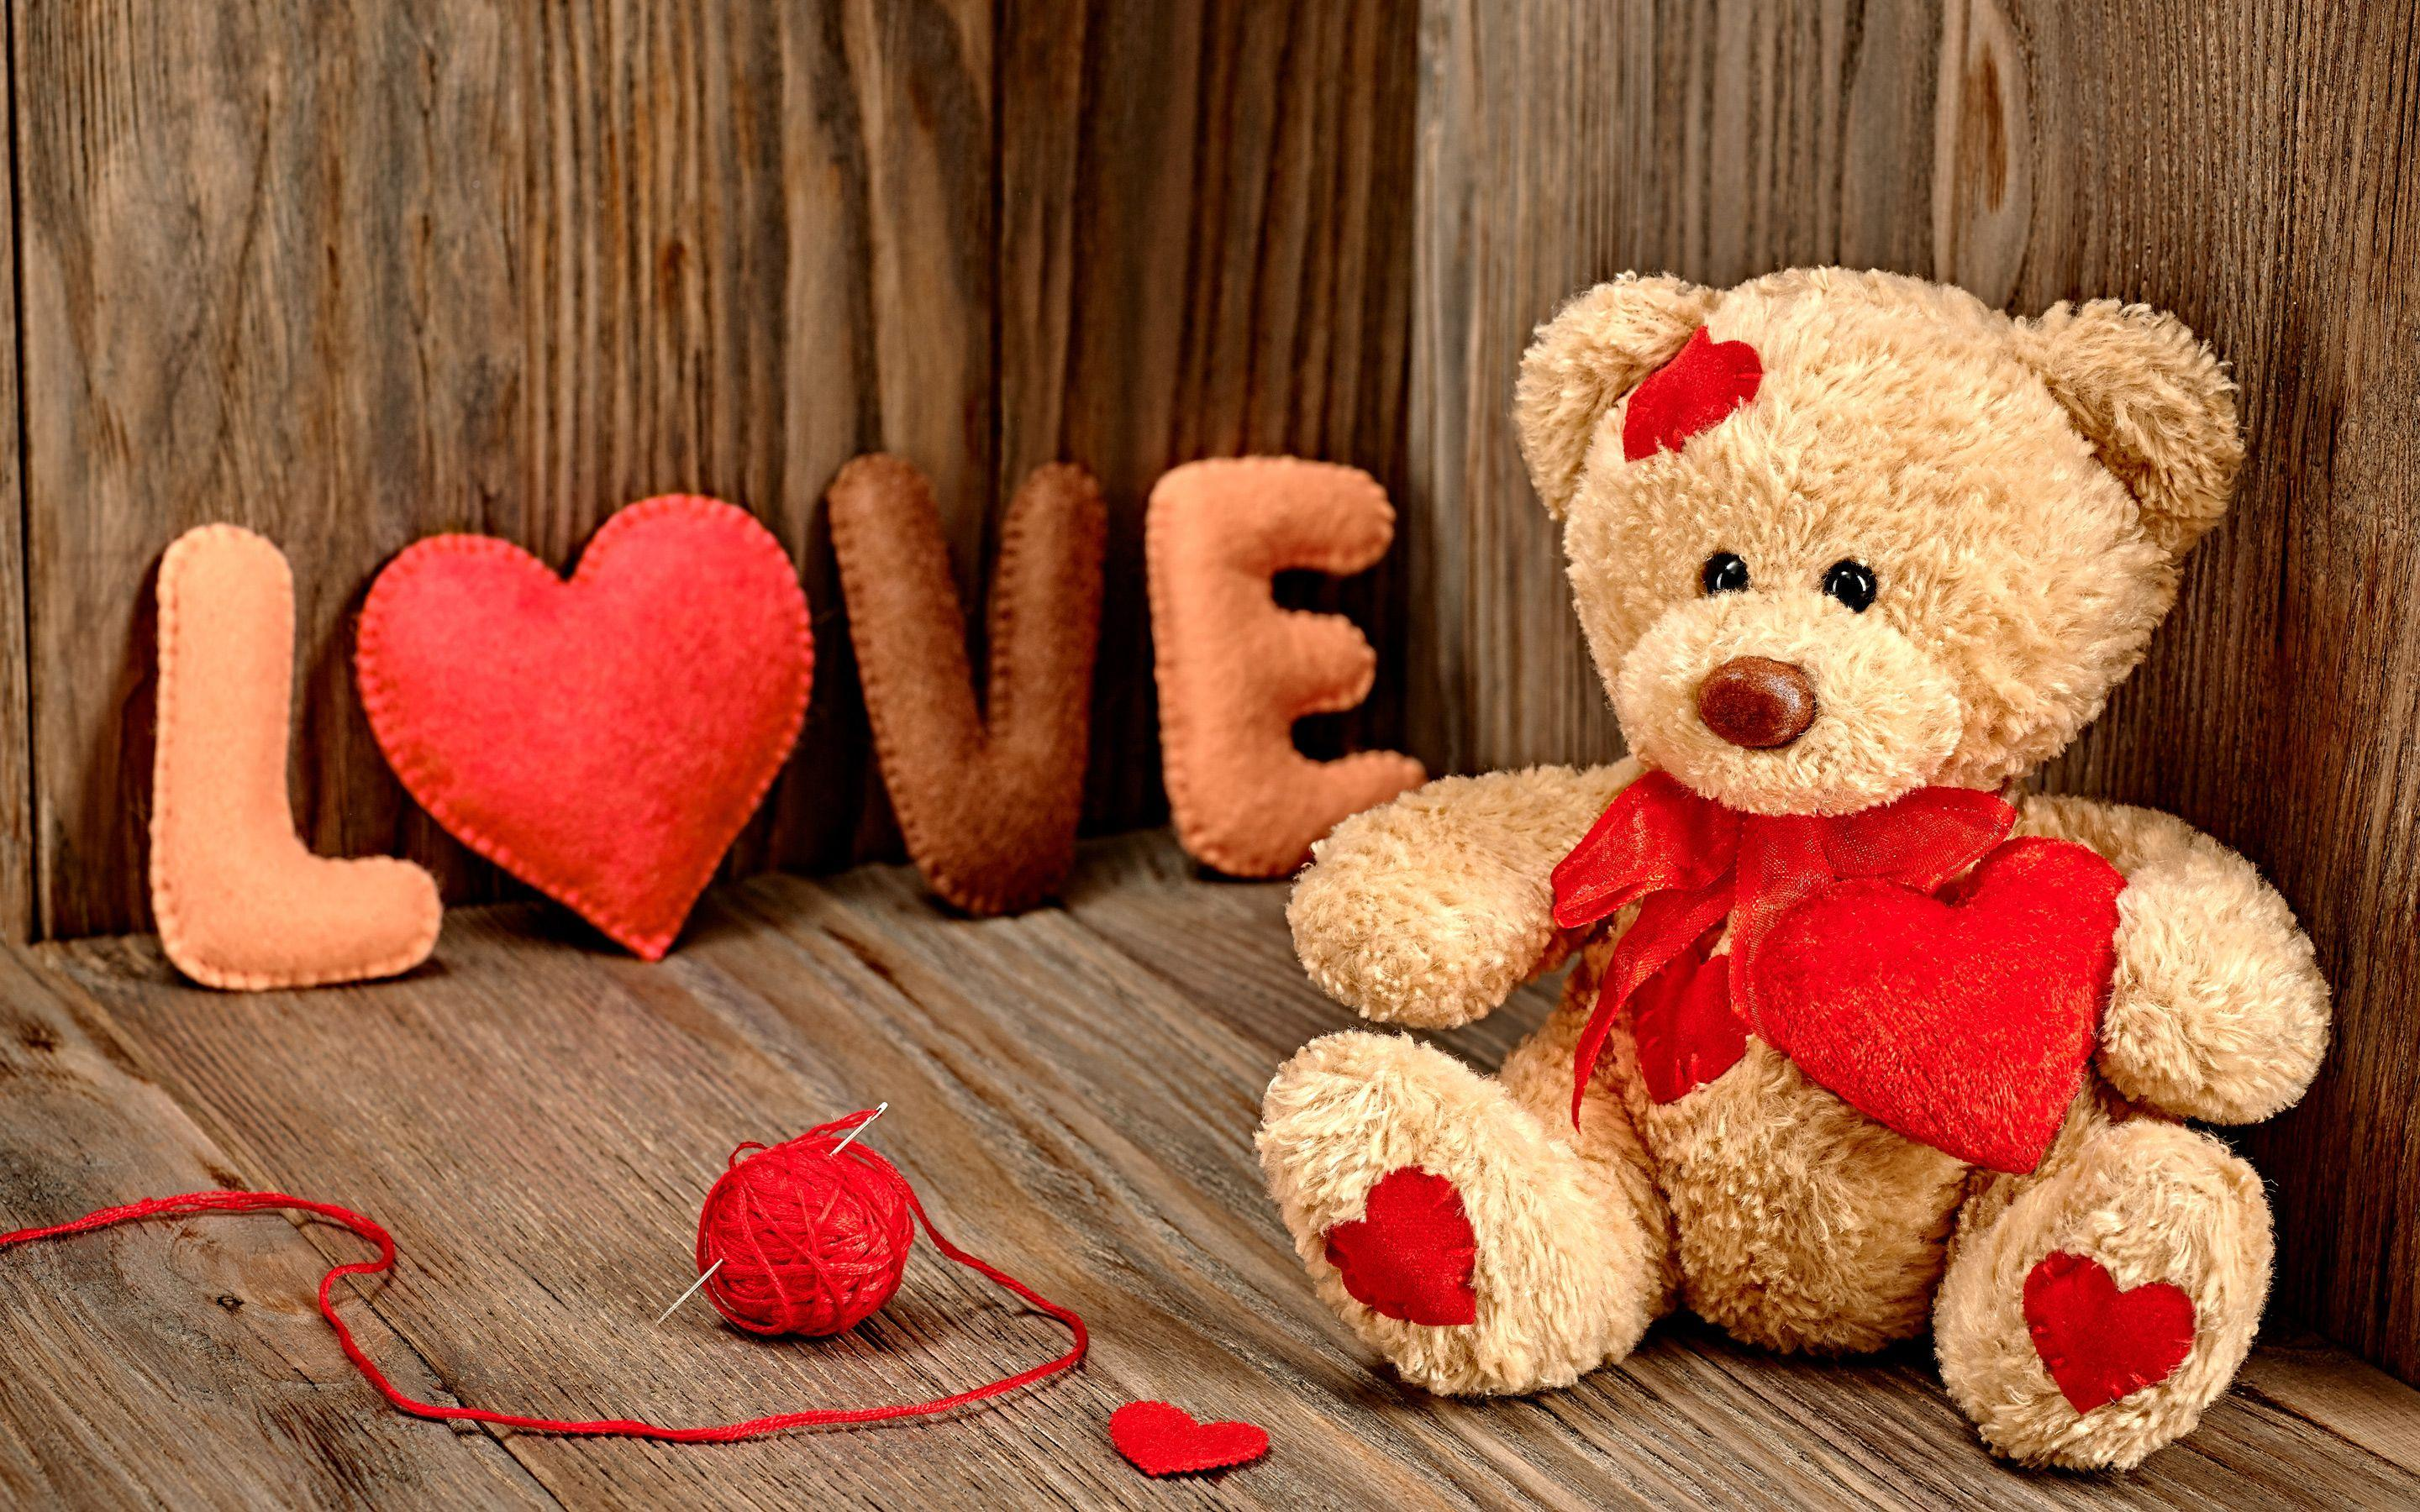 Free Teddy Bear Wallpapers Wallpaper Cave